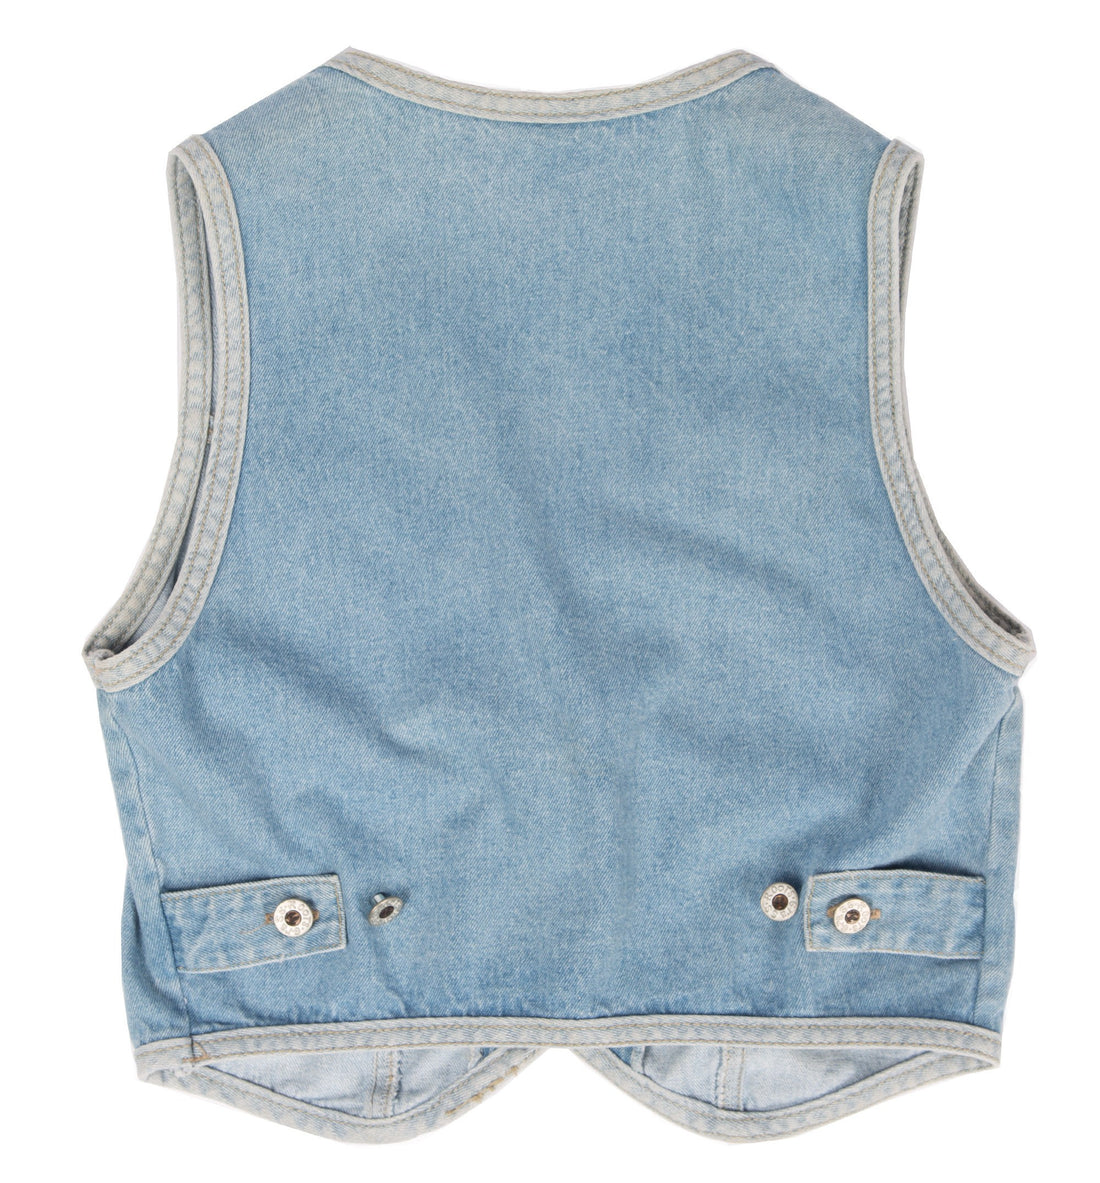 Vintage Denim Vest, S - Vintage - Iron and Resin